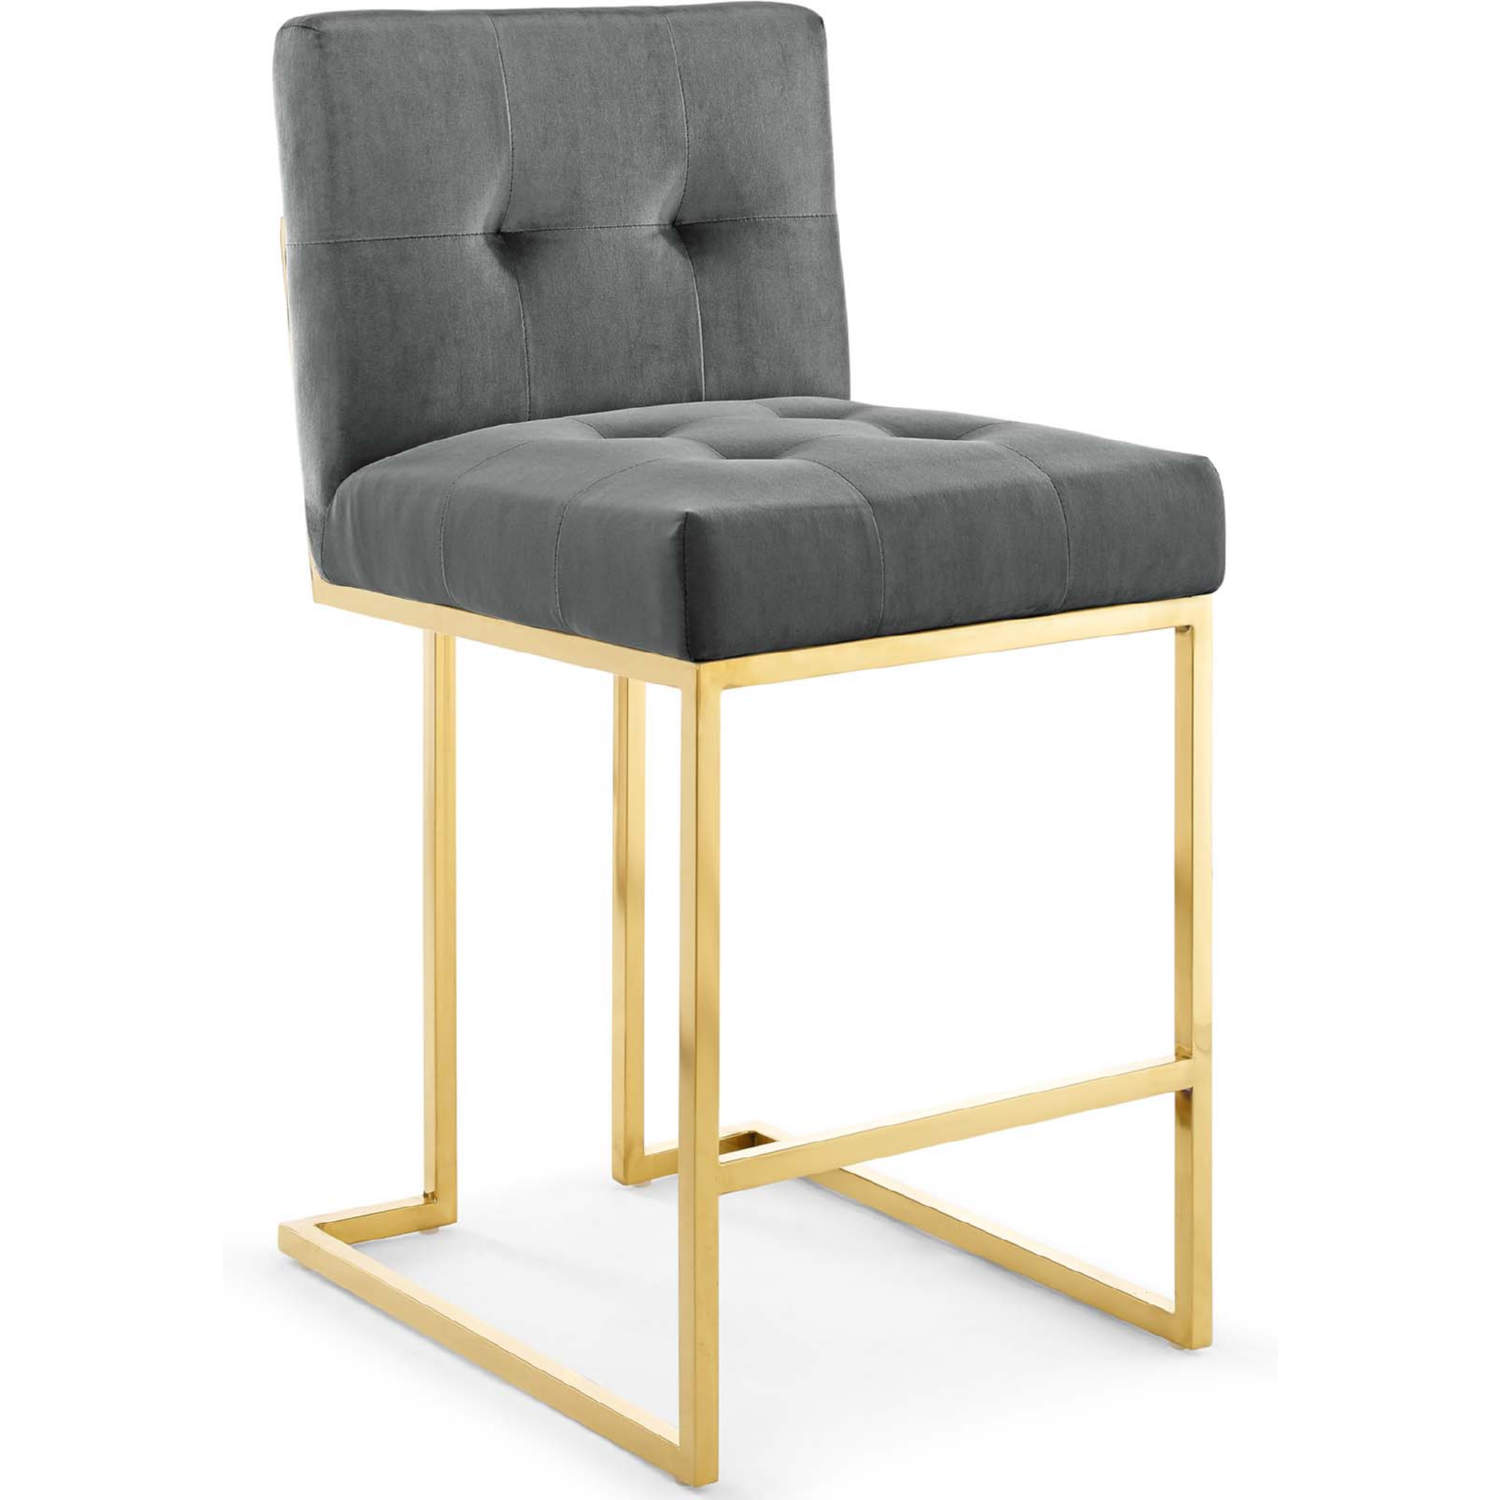 Brilliant Privy Counter Stool In Tufted Charcoal Gray Velvet Gold Stainless By Modway Gmtry Best Dining Table And Chair Ideas Images Gmtryco